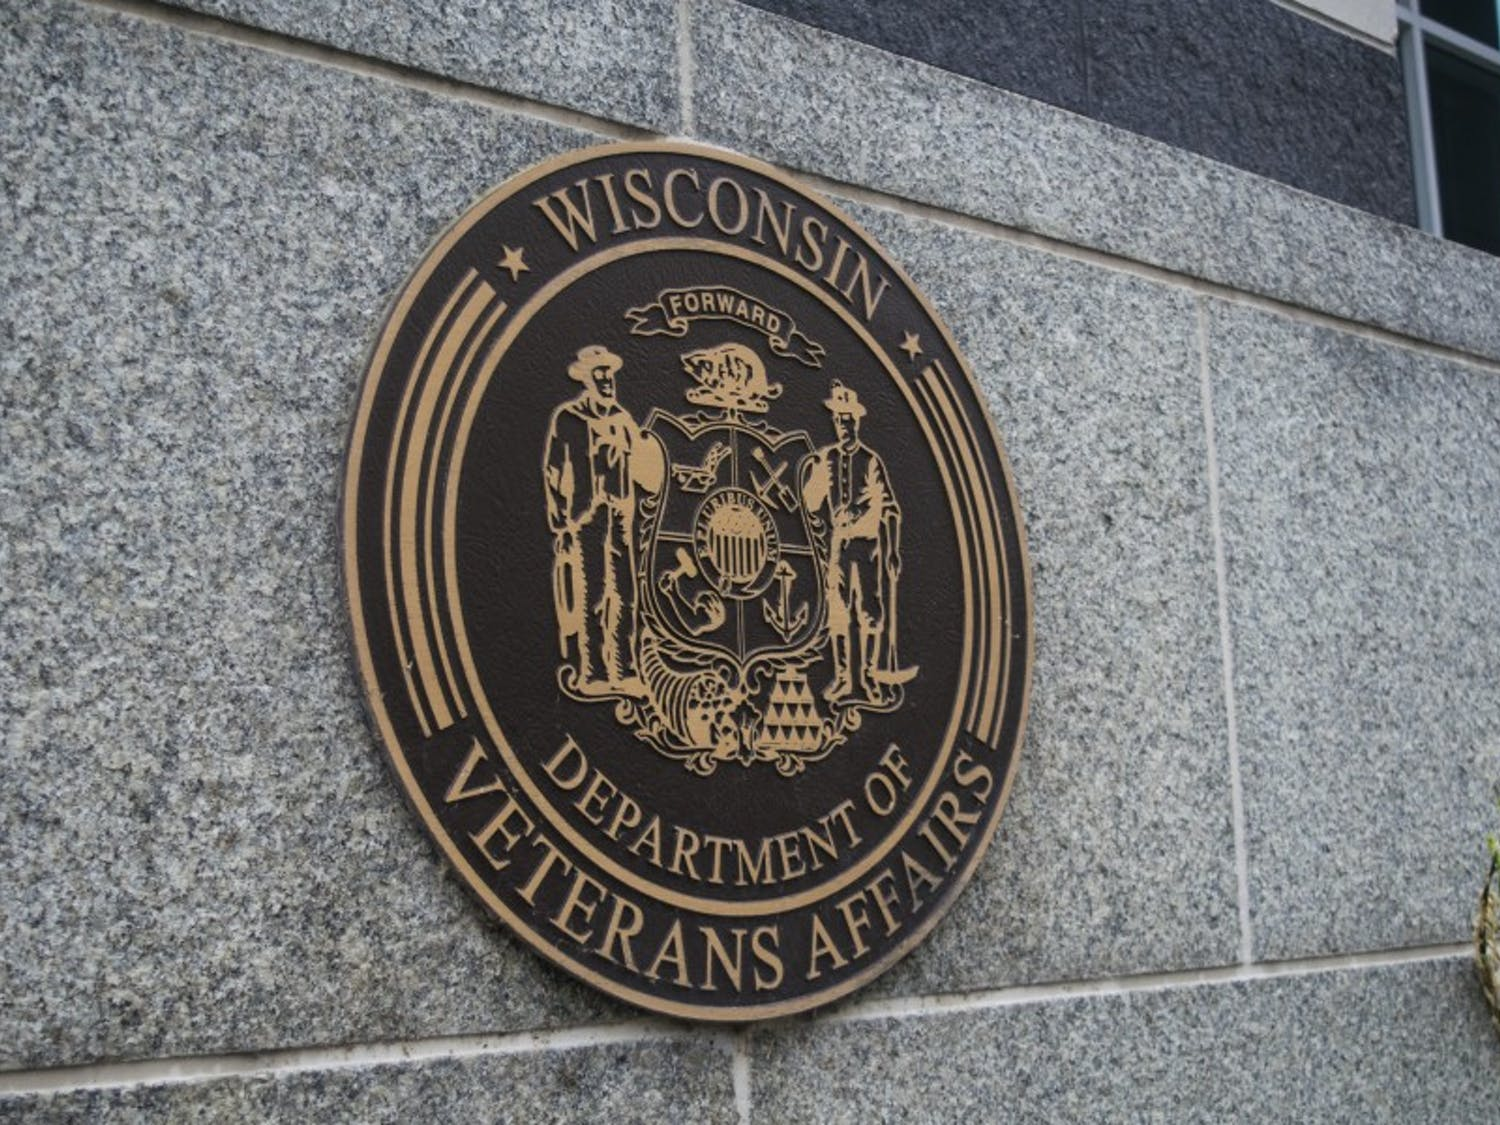 A provision in the 2017-'19 state budget that would oversee the transfer of funds from one veteran organization to another was eliminated before the budget was signed into law last month.